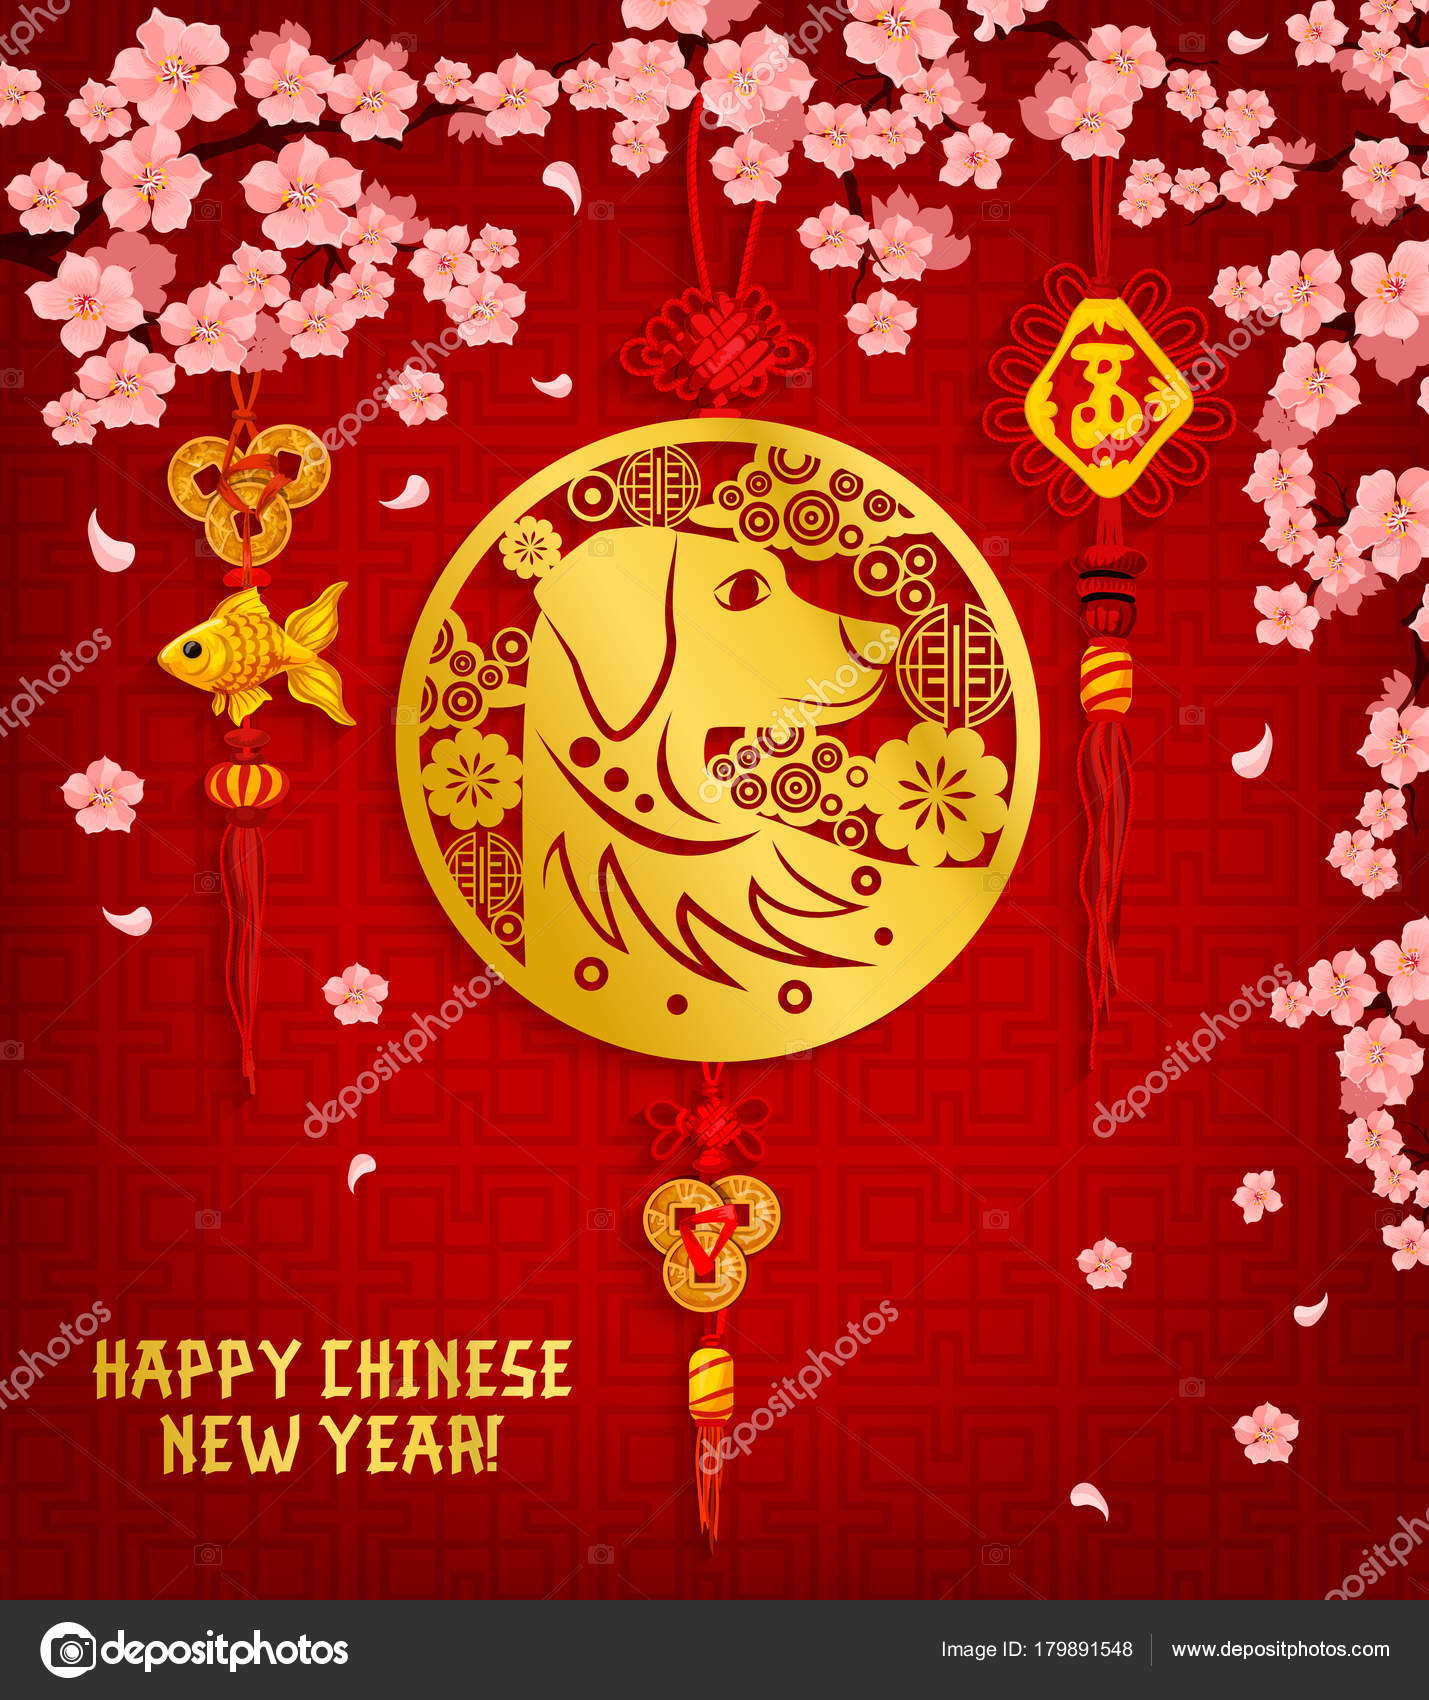 Chinese new year greeting card with dog and flower stock vector chinese new year greeting card with dog and flower stock vector m4hsunfo